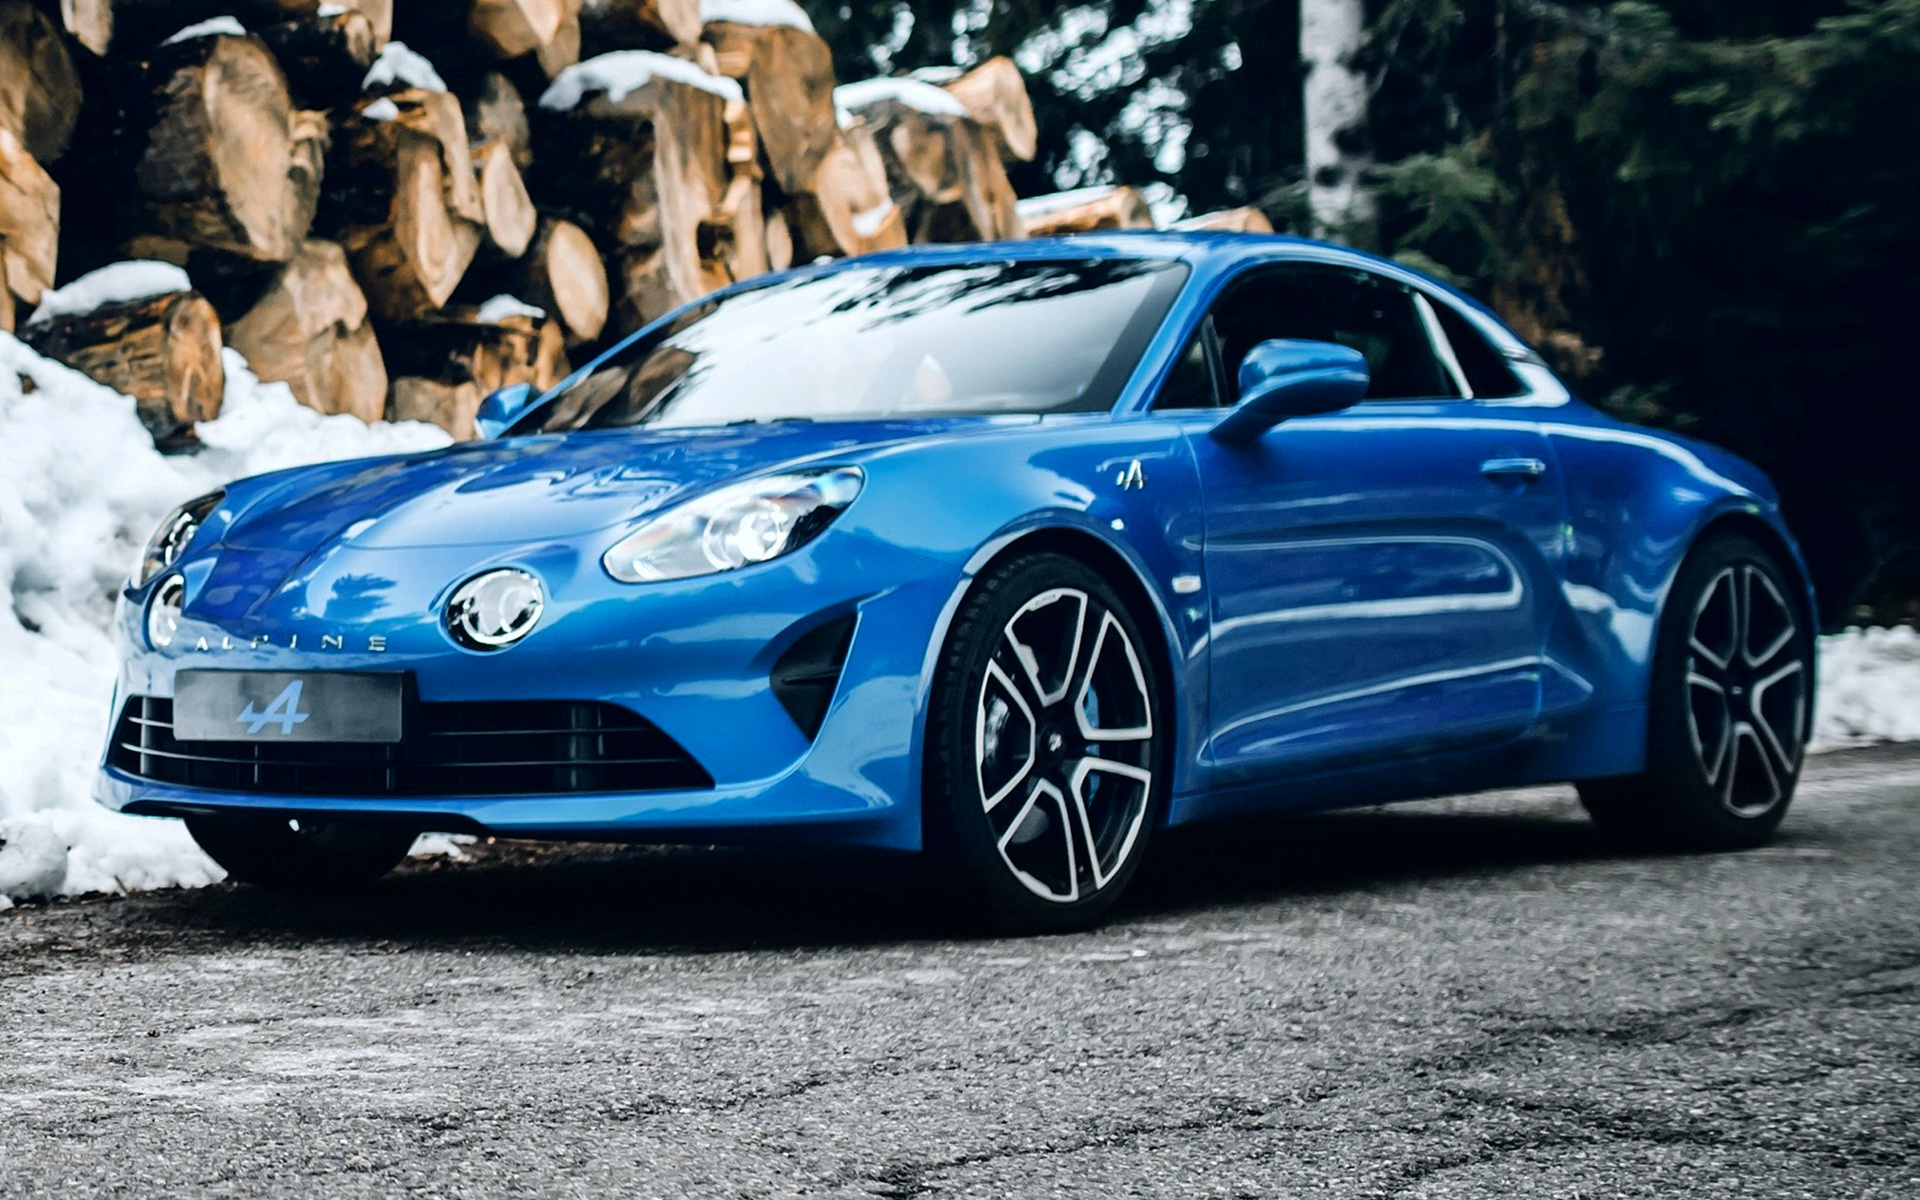 Alpine A110 Premiere Edition (2017) Wallpapers and HD Images - Car ...